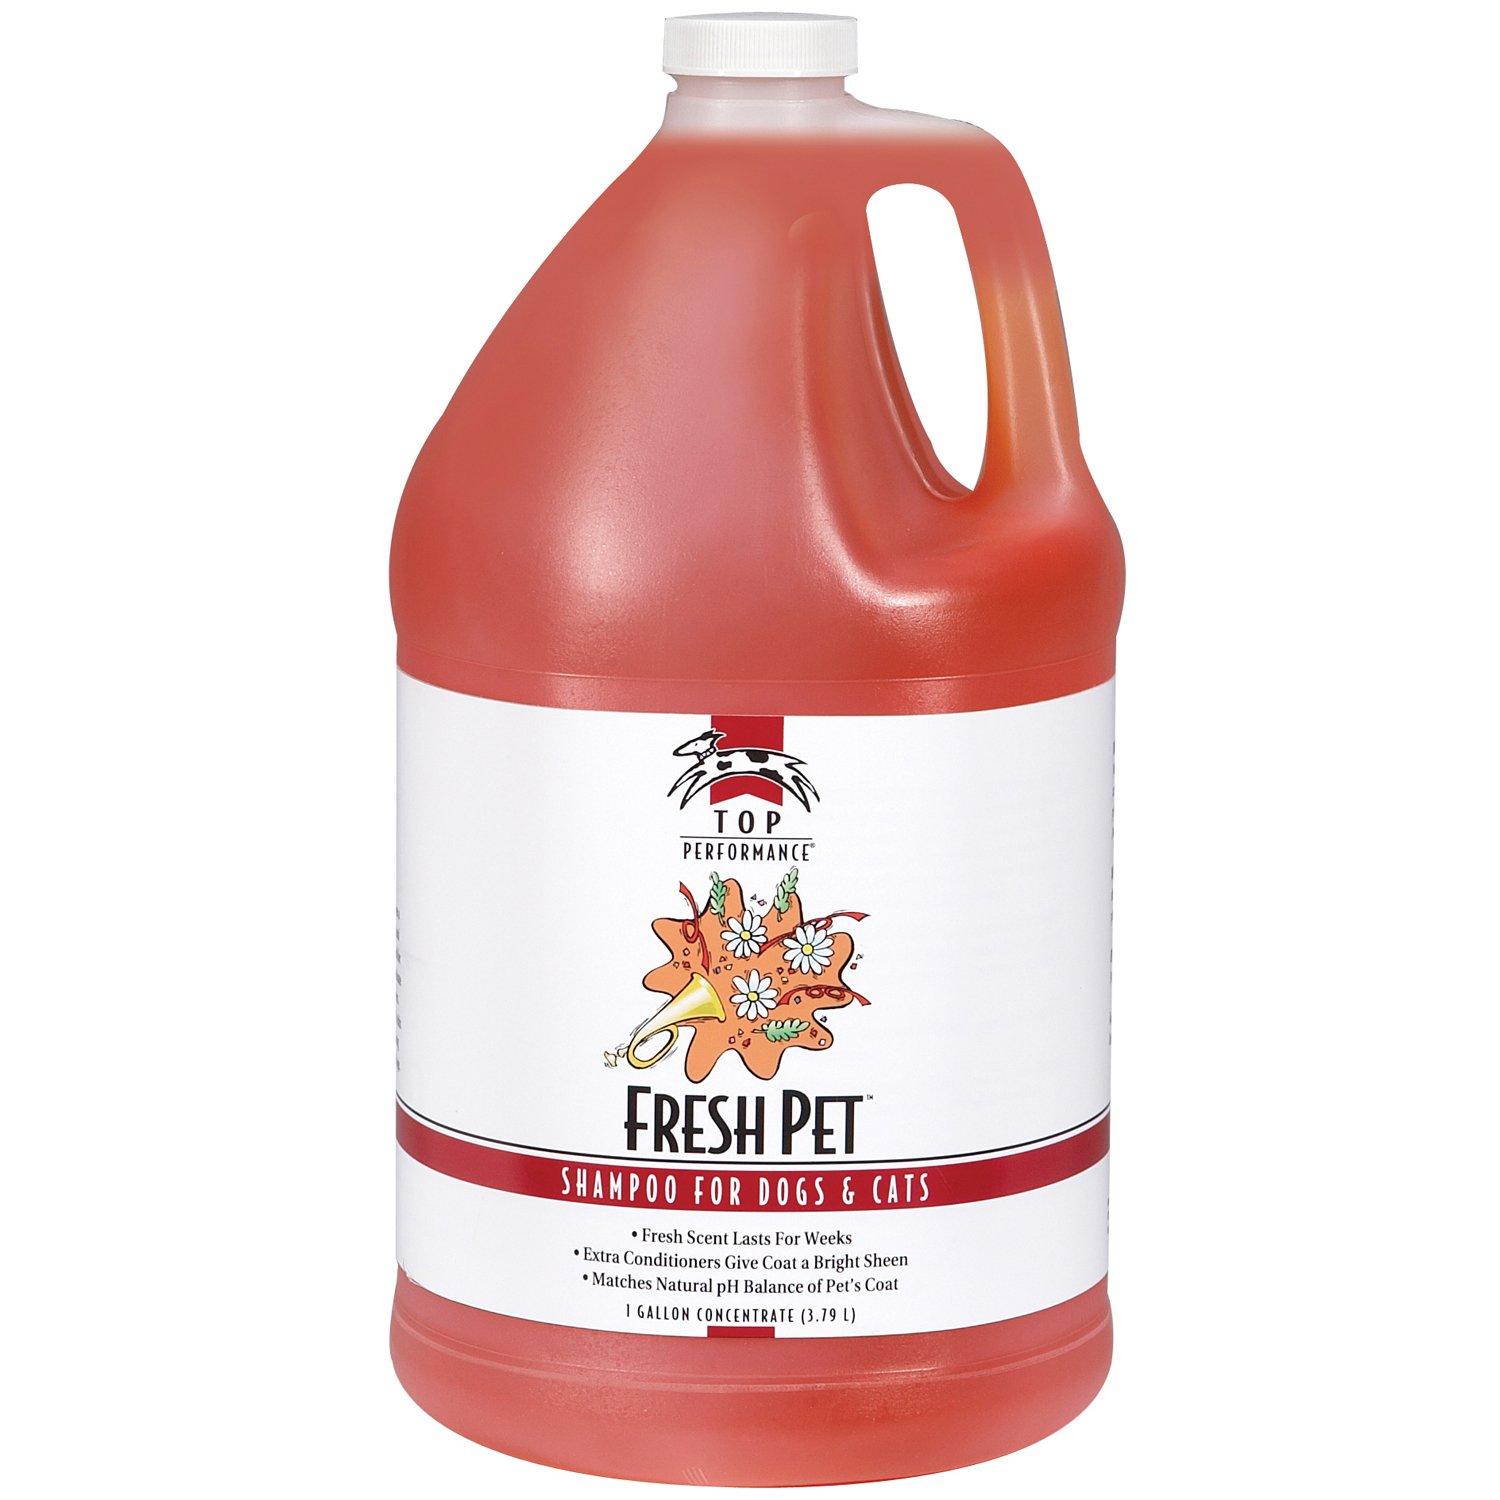 5. Top Performance Fresh Pet Shampoo